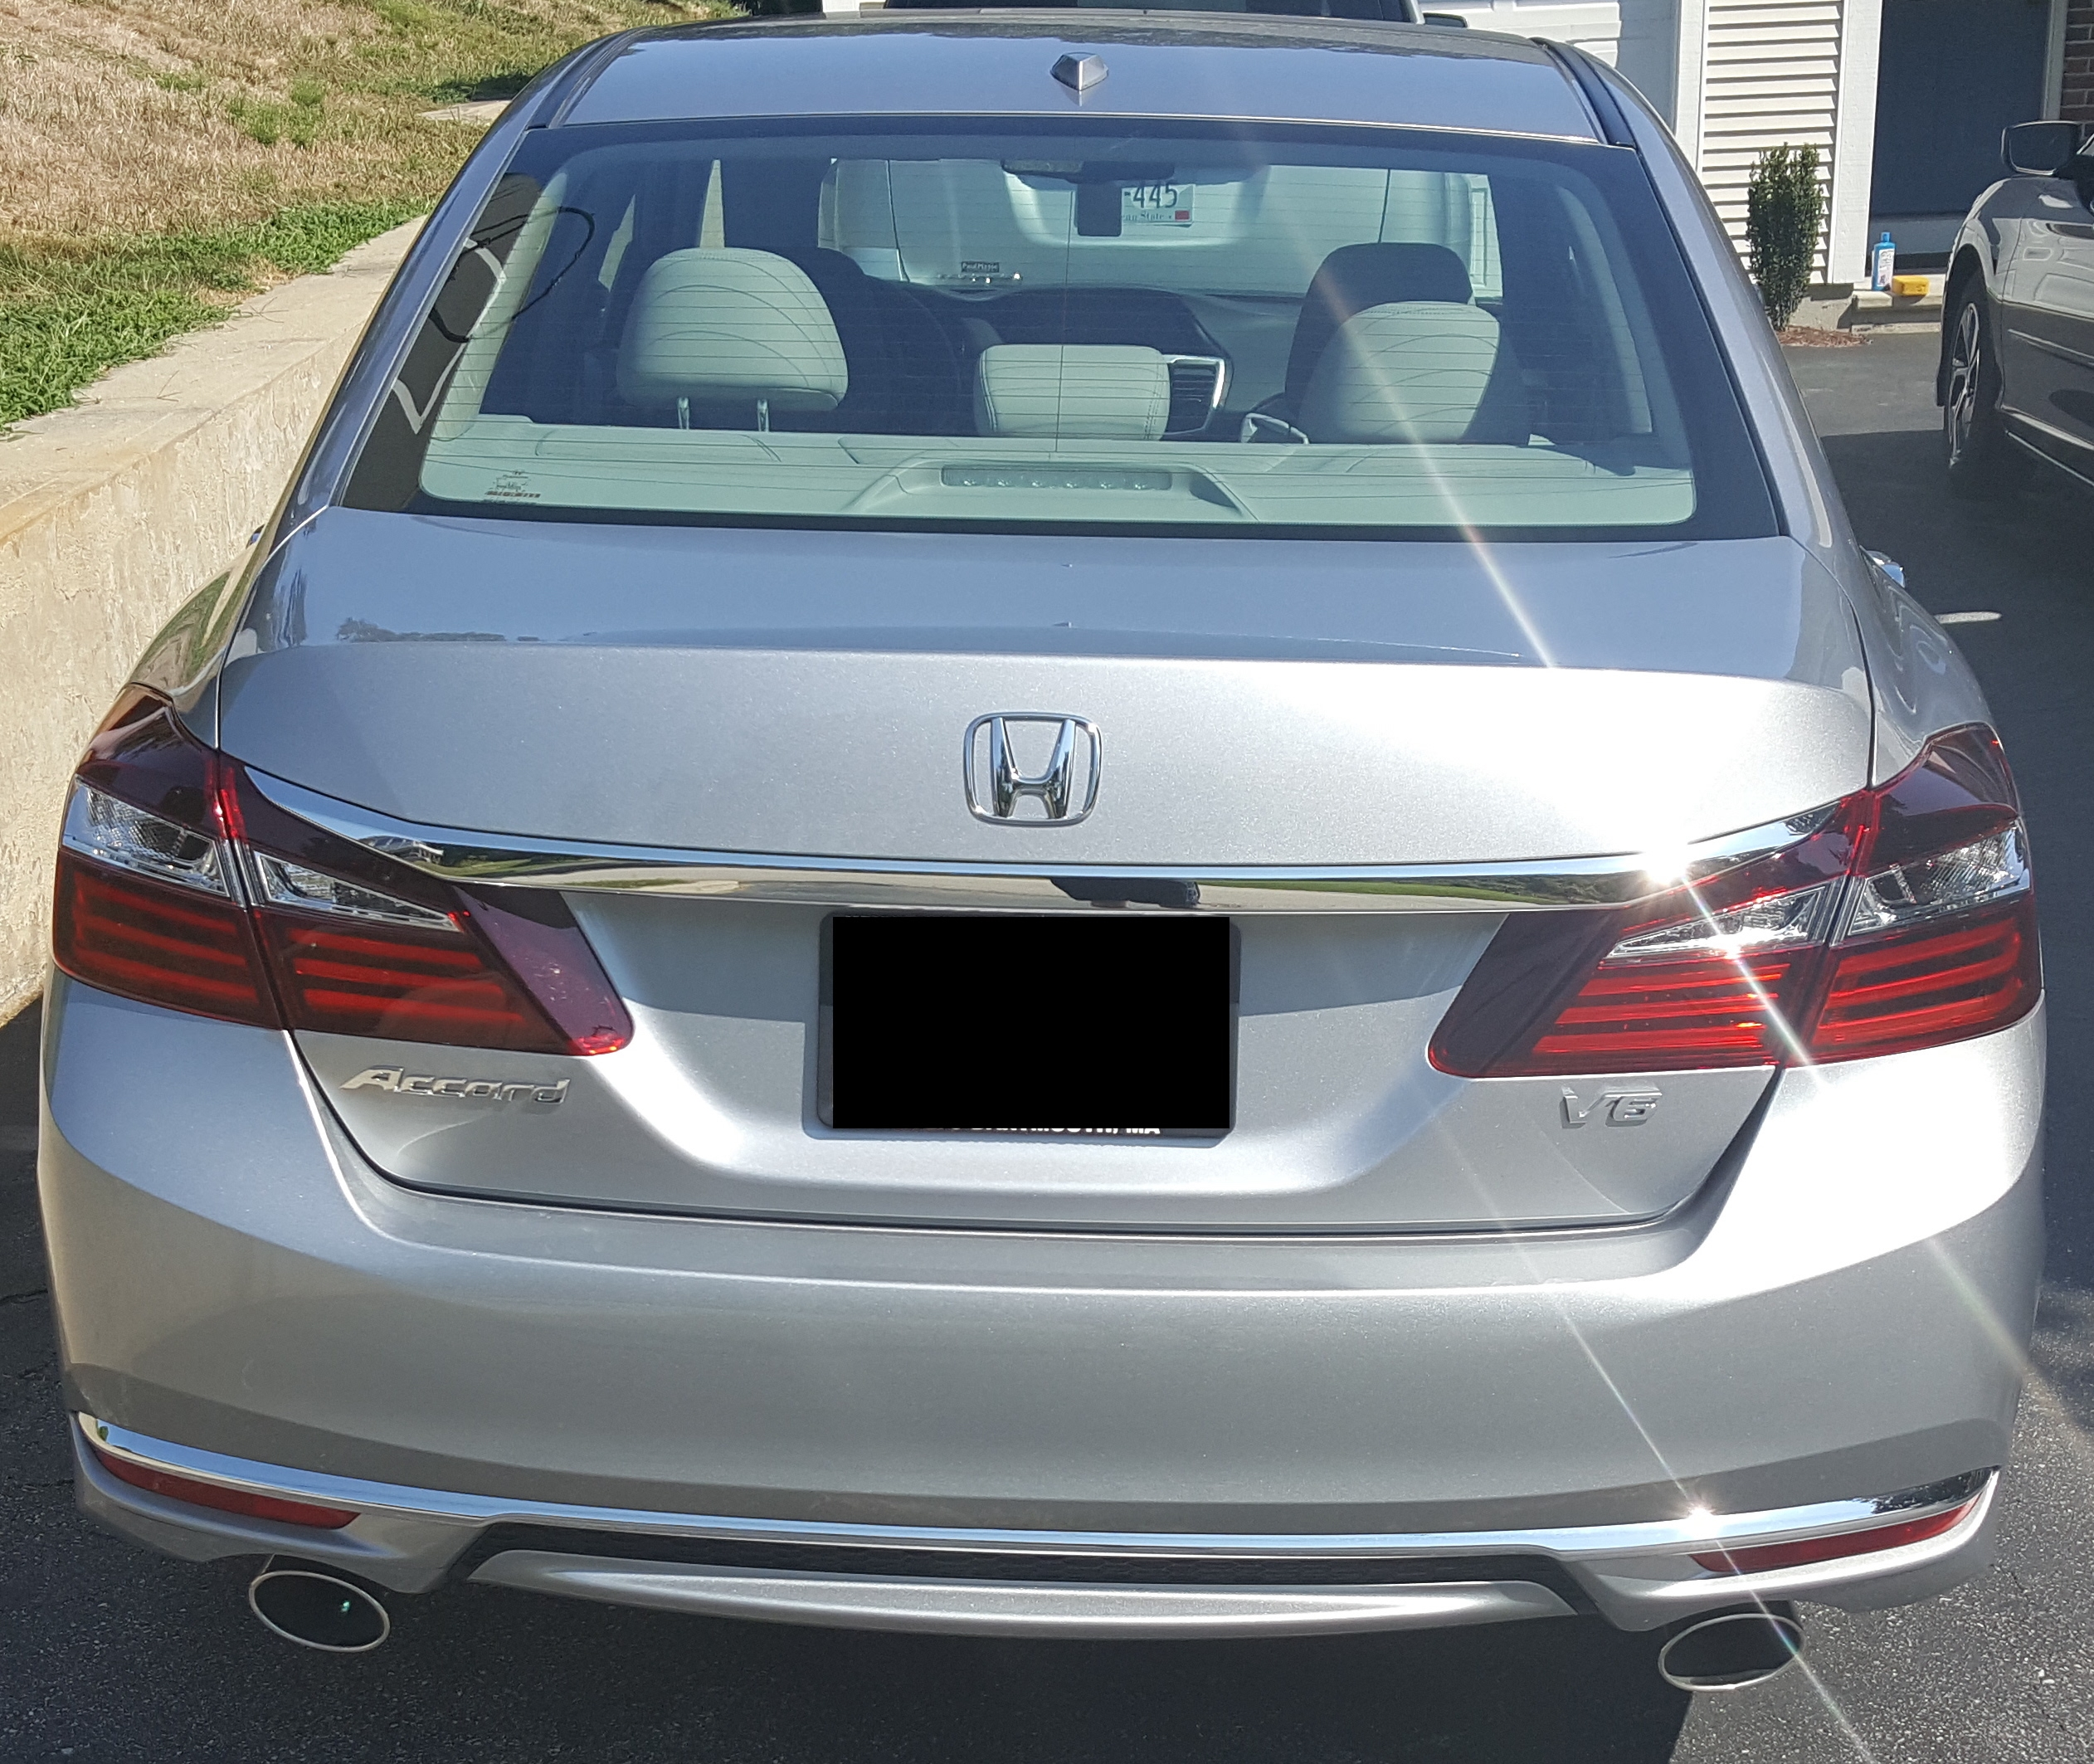 2016 honda accord prices paid and buying experience page for 2017 honda accord prices paid